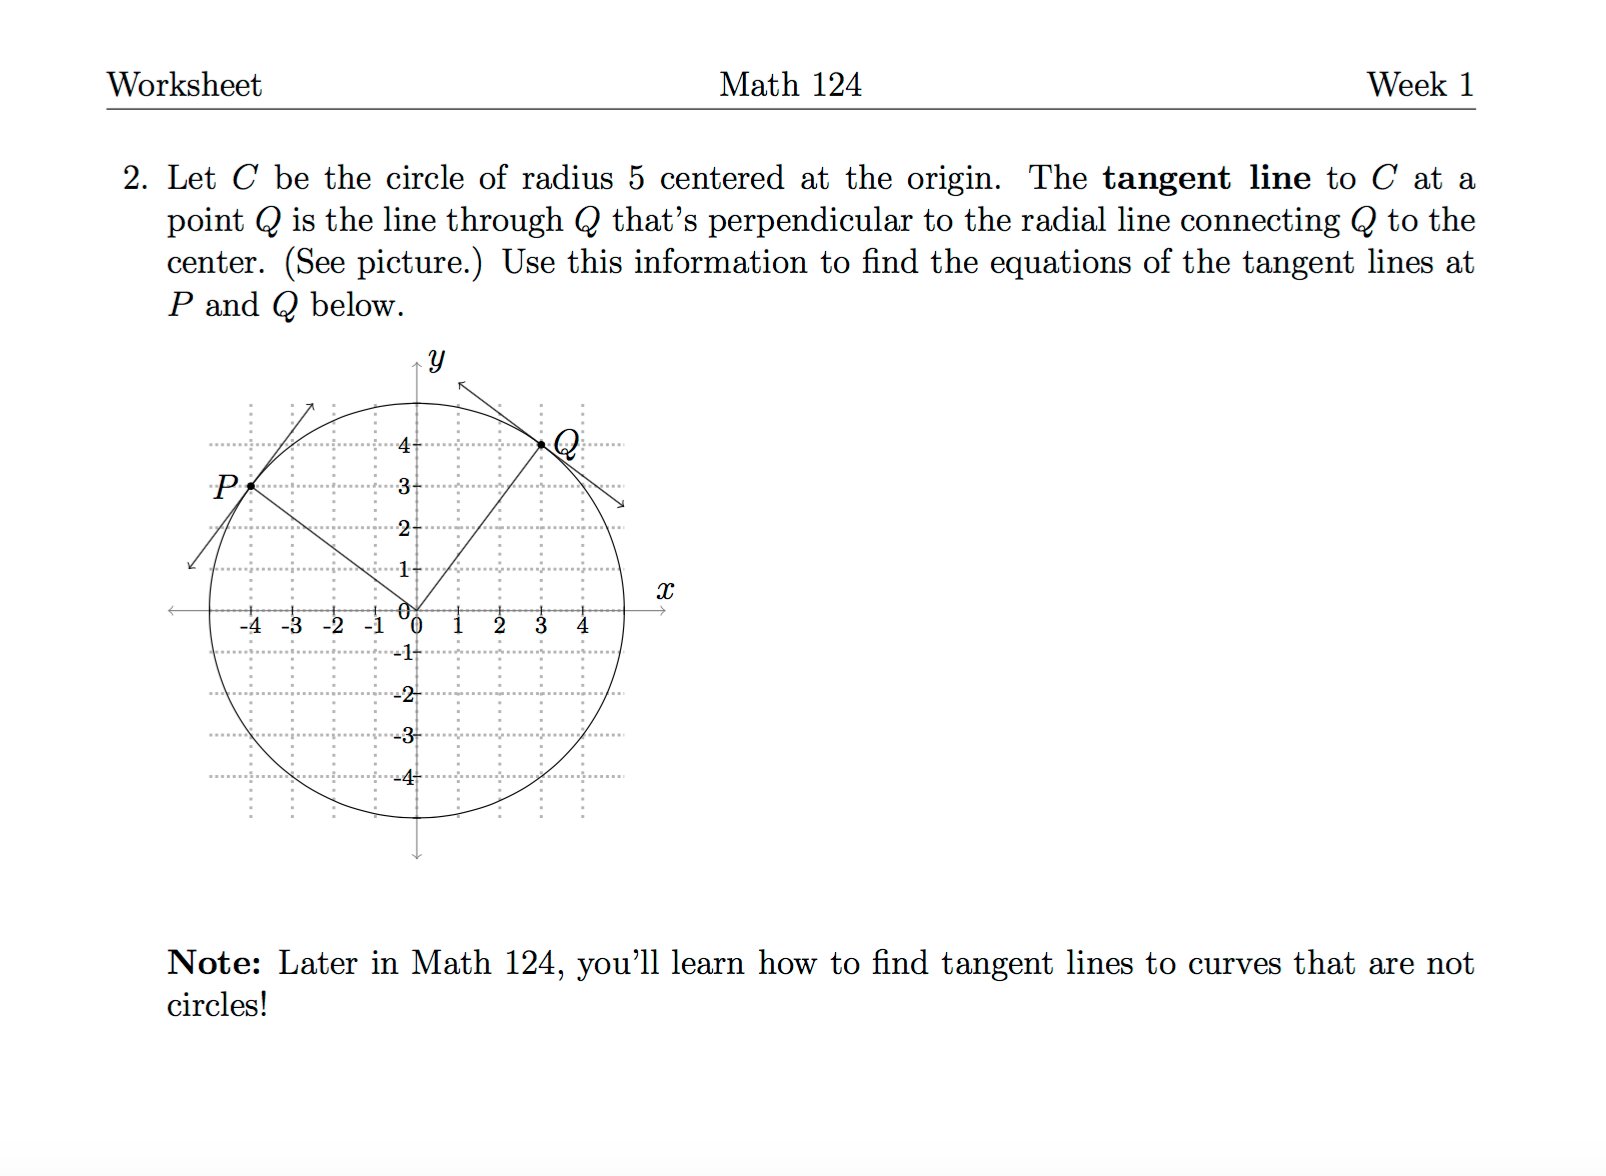 Worksheet Math 124 Week 1 2. Let C Be The Circle O... | Chegg.com